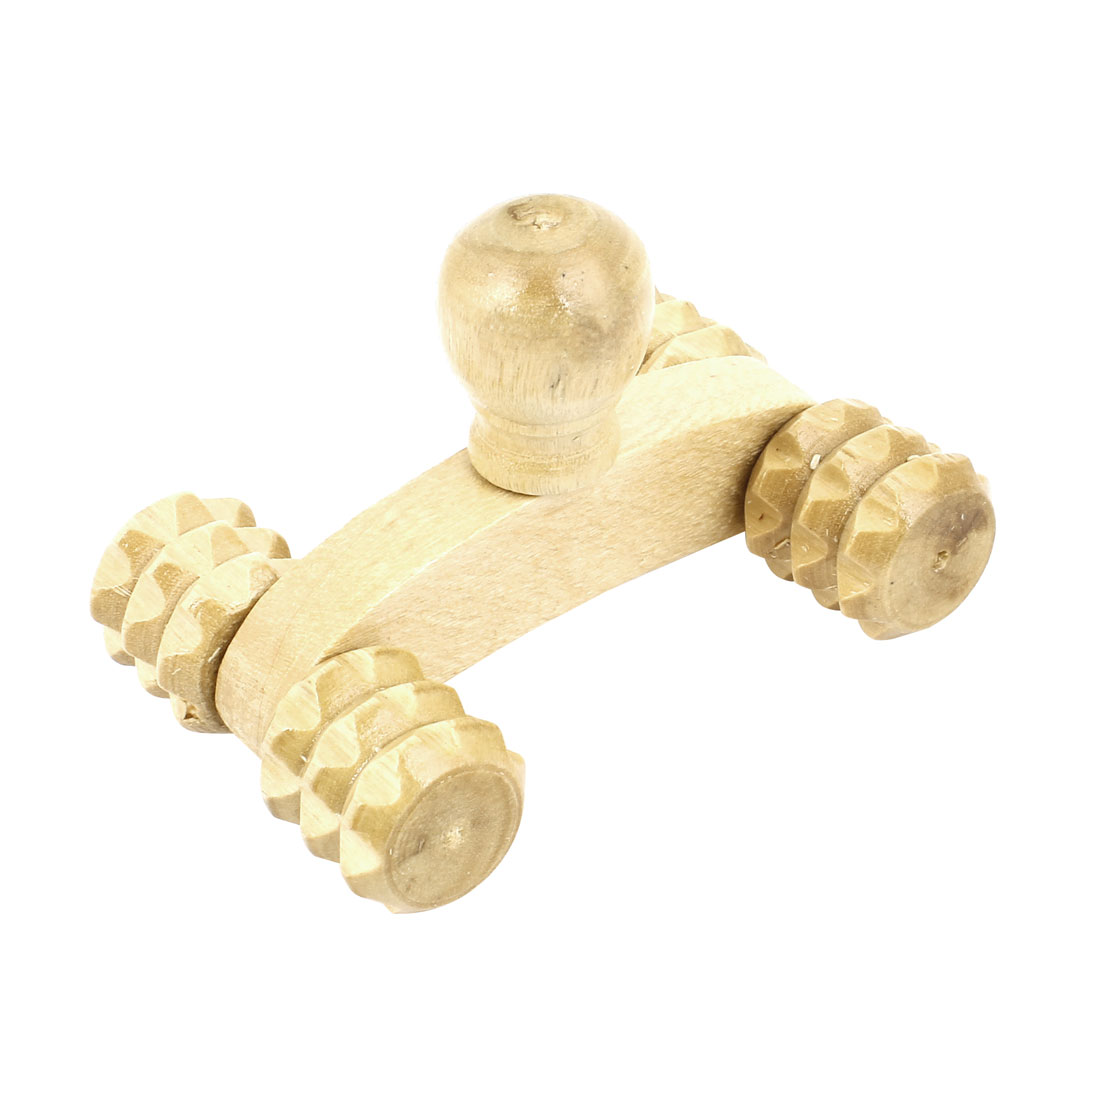 Mini 4 Wheels Wooden Massage Roller Body Arms Legs Massager